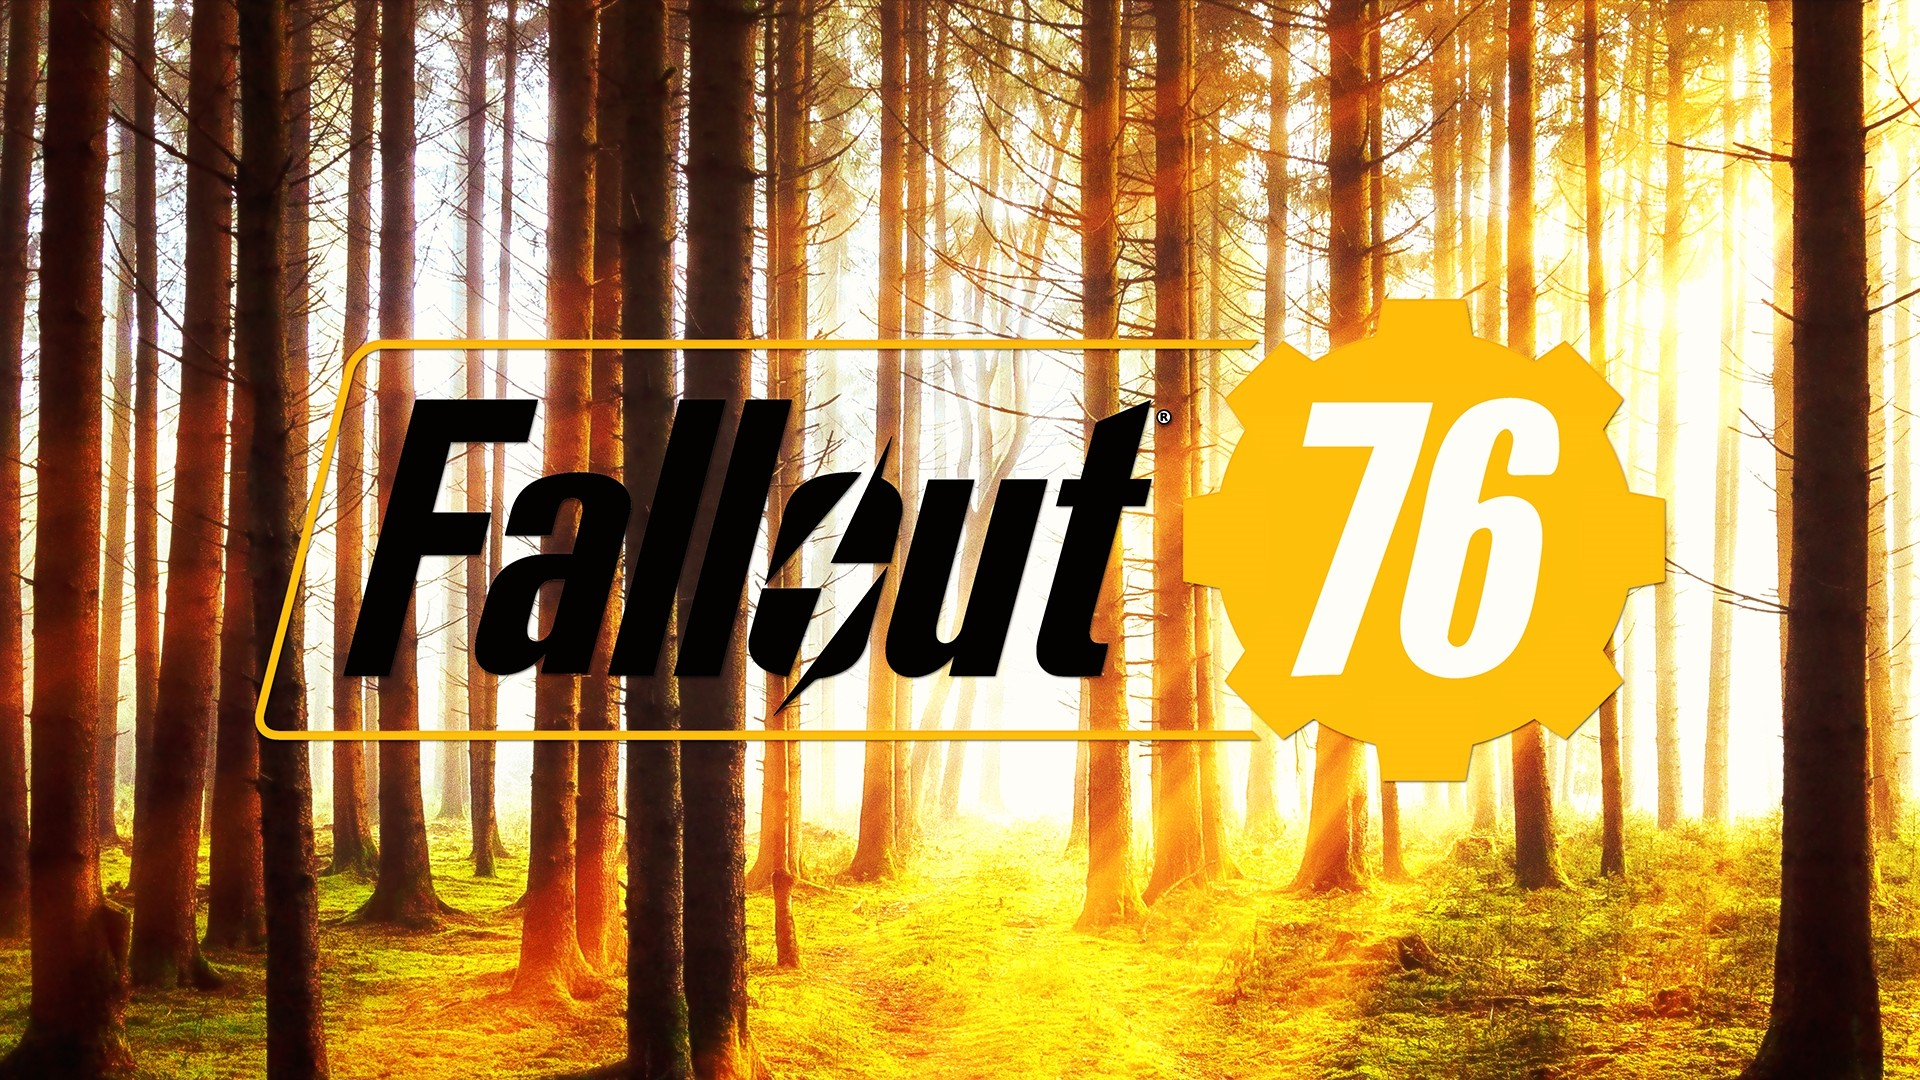 Fallout 76 Free Wallpaper and Background